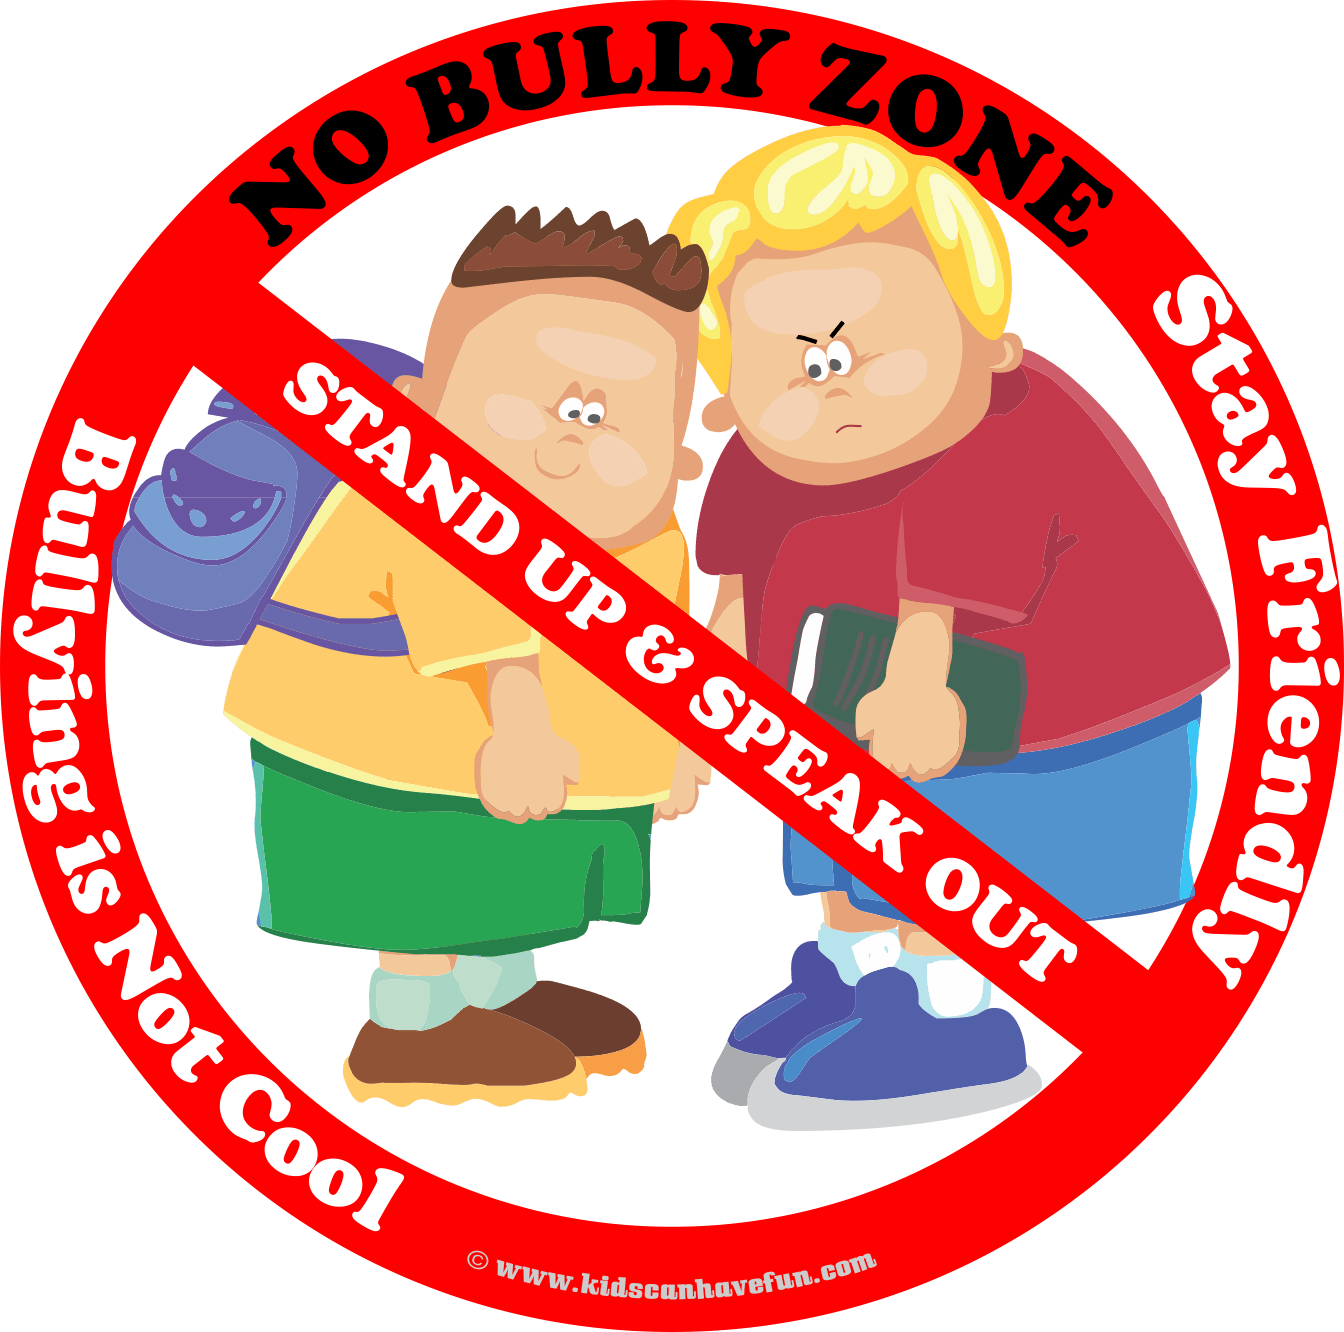 No Bully Zone Poster To Hang Up At School Home Or Daycare Find More No Bullying Printables And